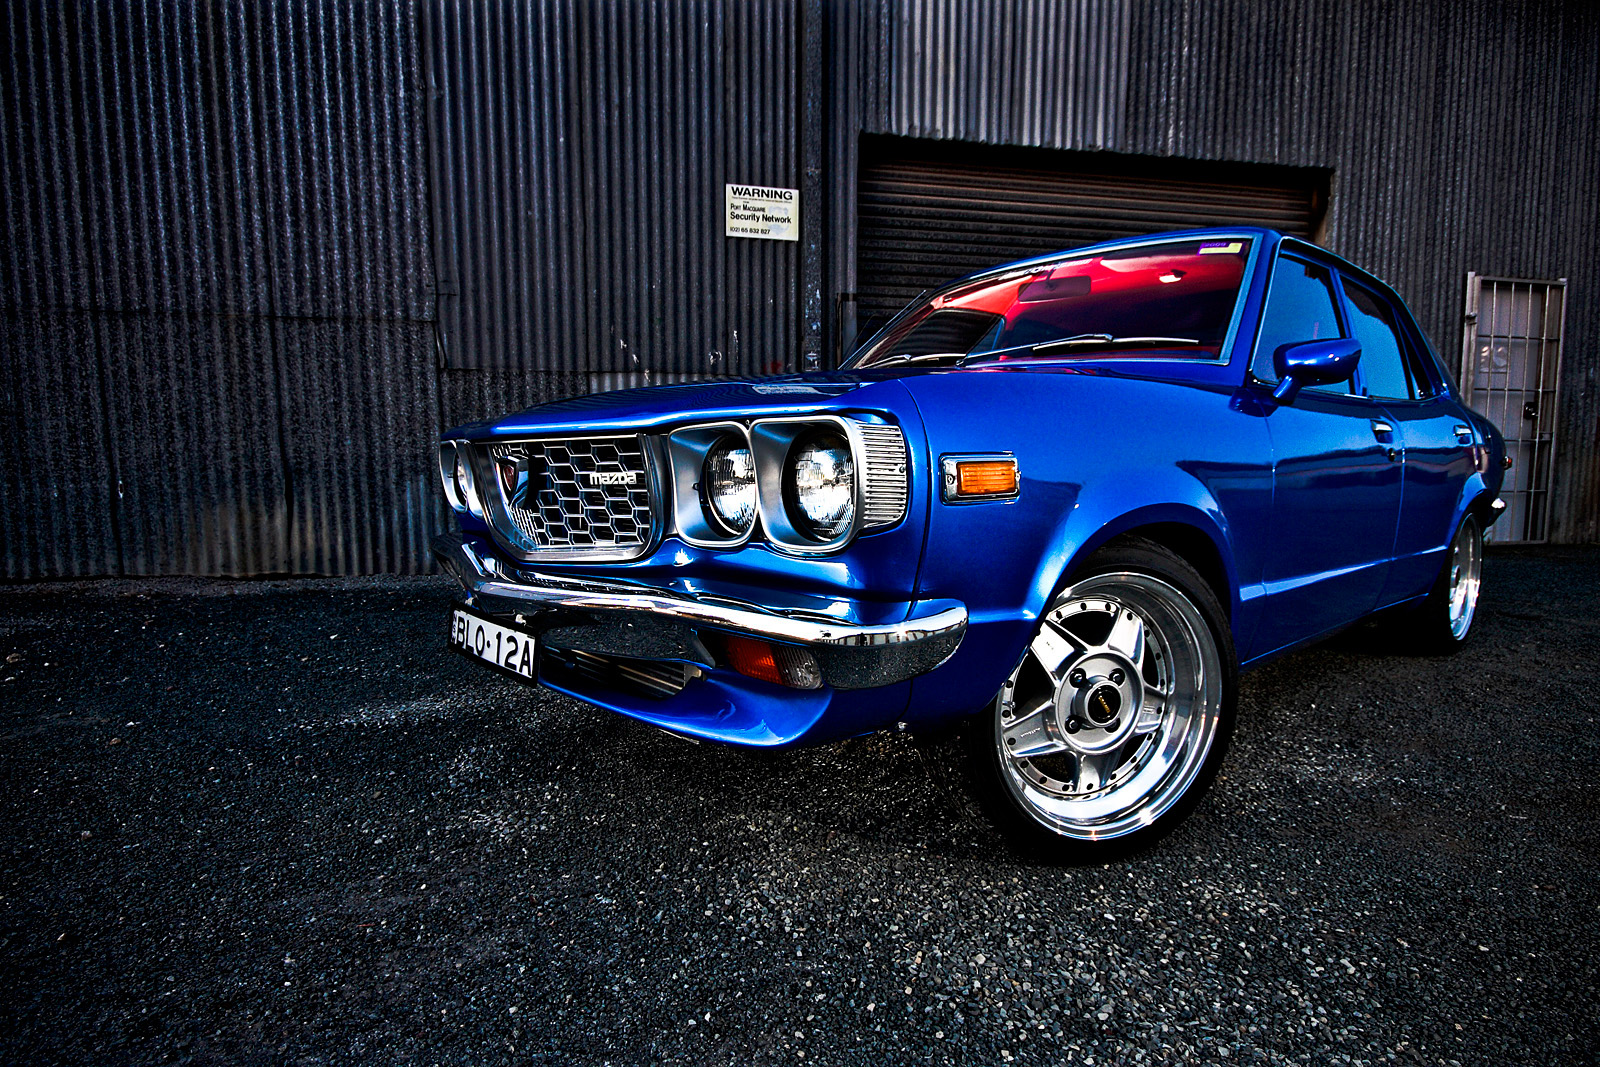 [Image: Mazda_RX3_by_bleed_the_sky.jpg]